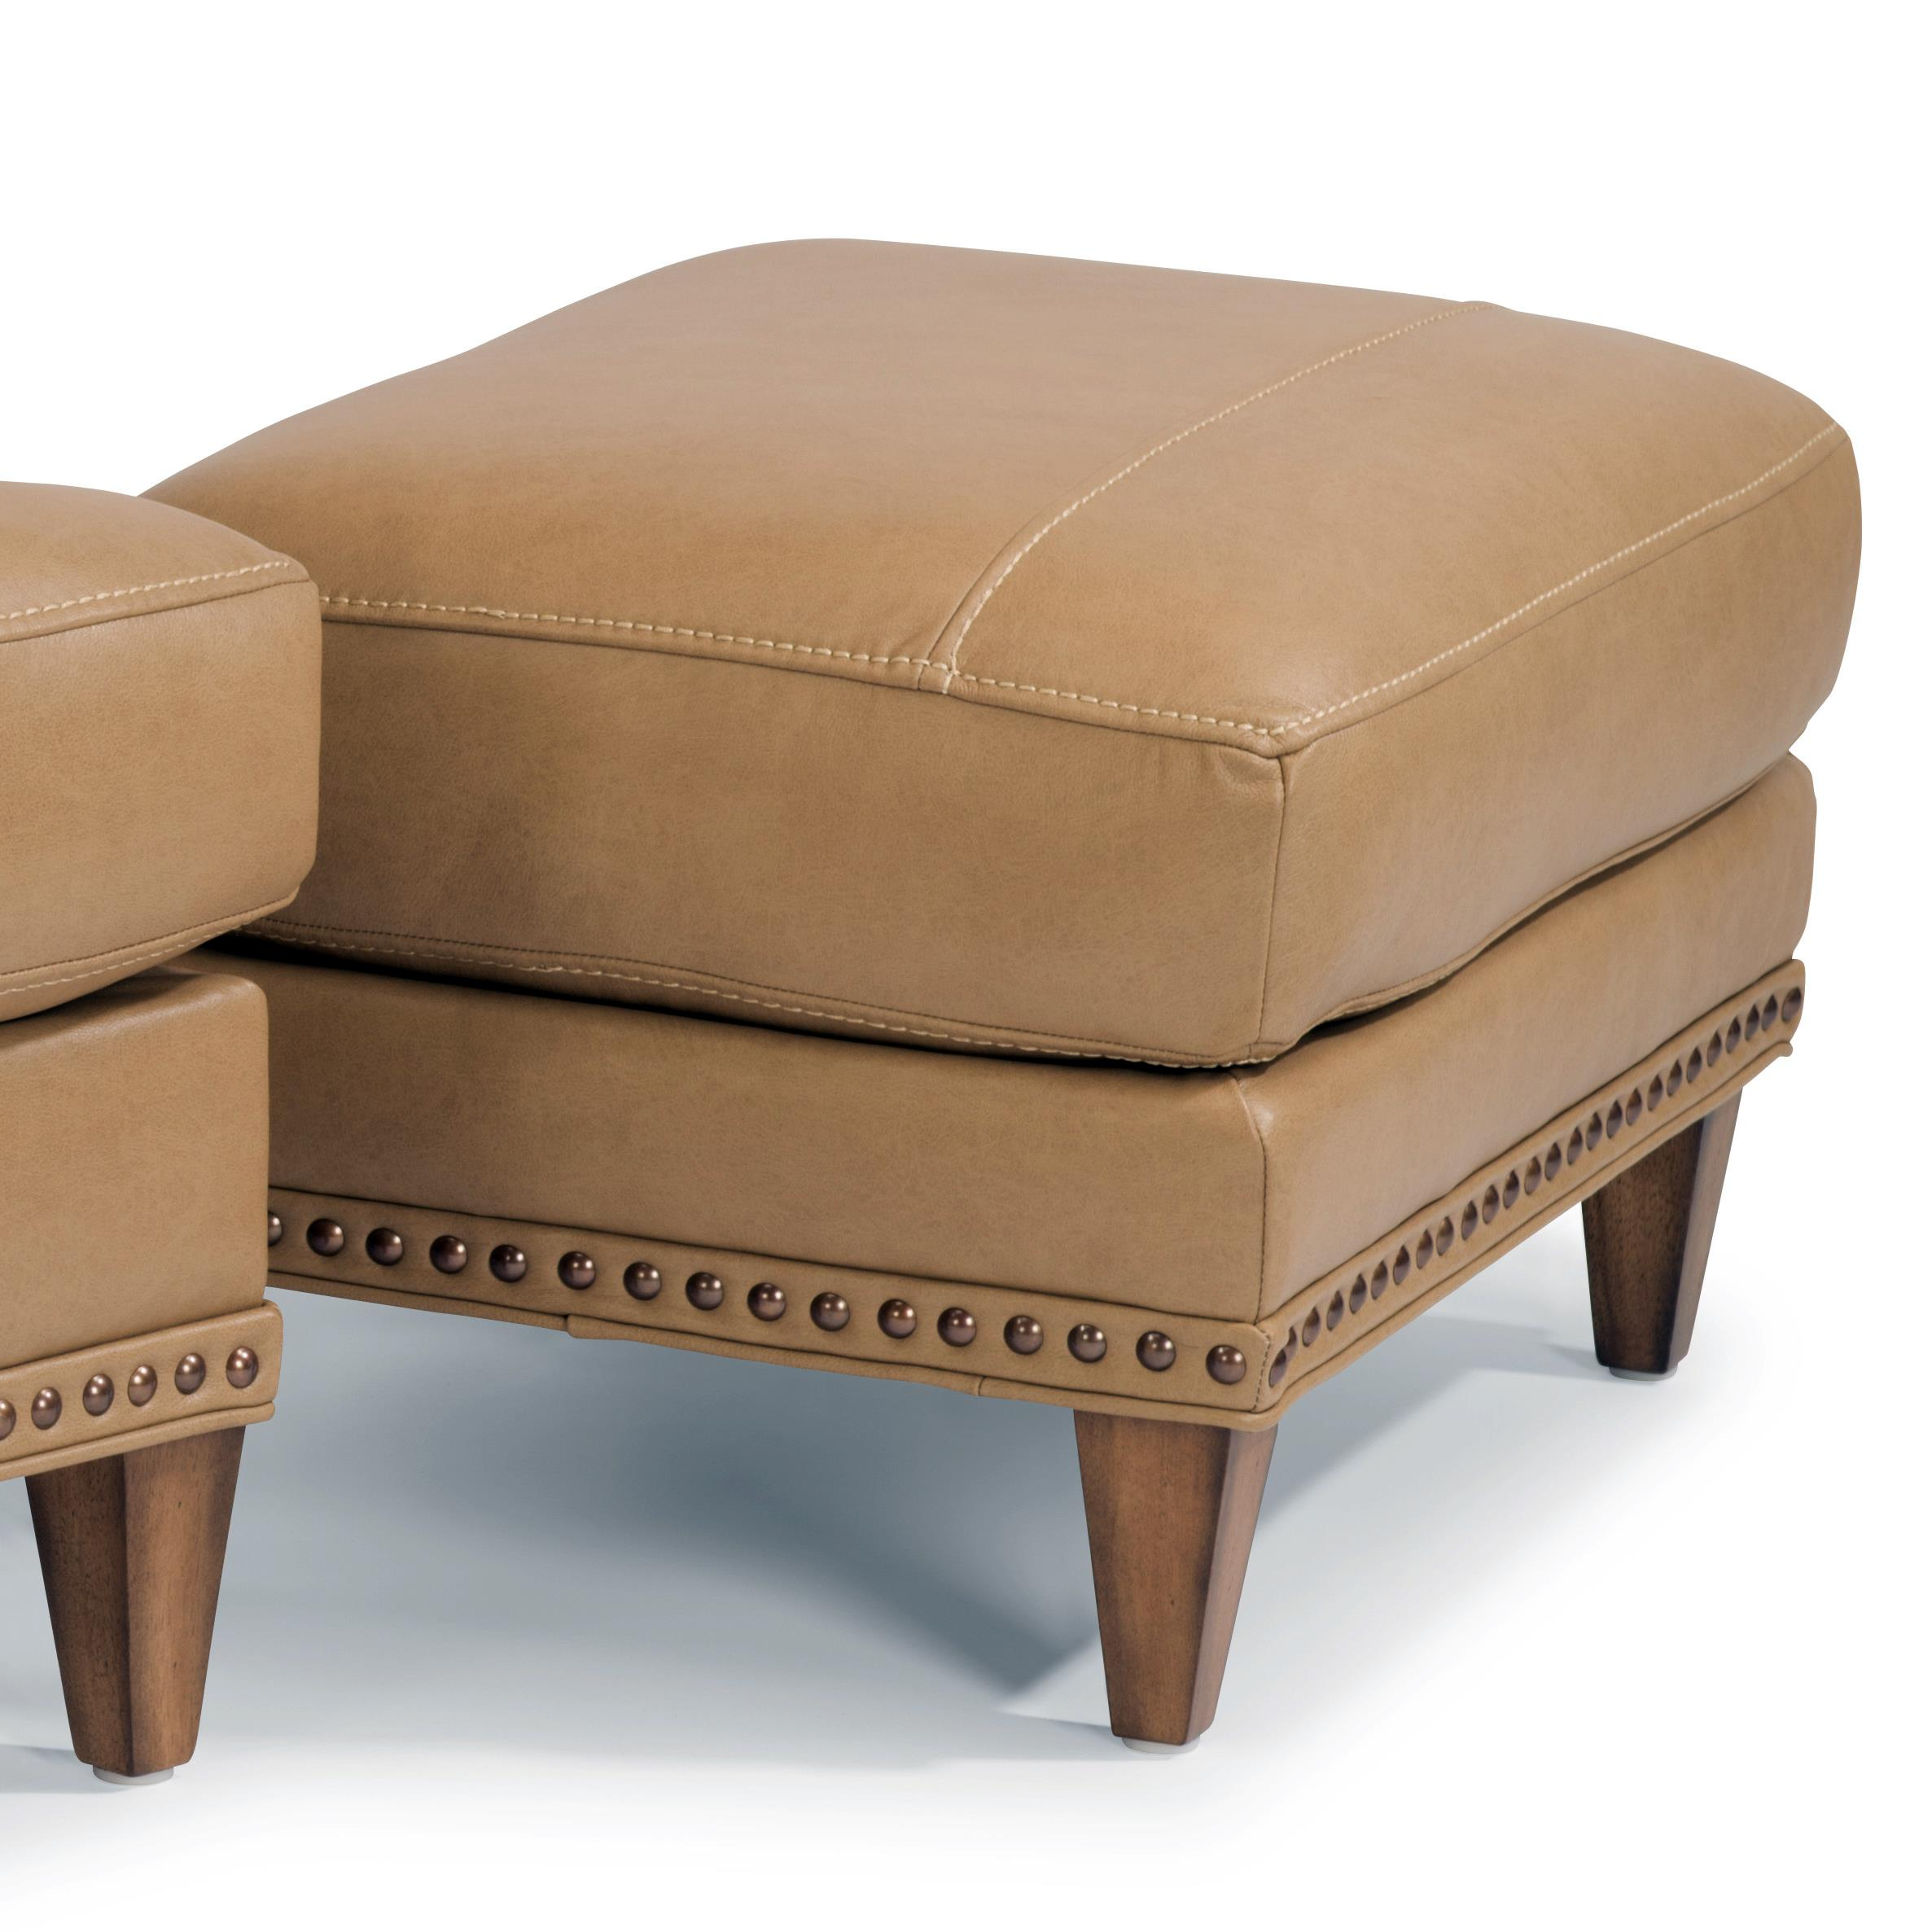 Flexsteel Ocean Ottoman w/ Nails - Item Number: B3367-08-174-80